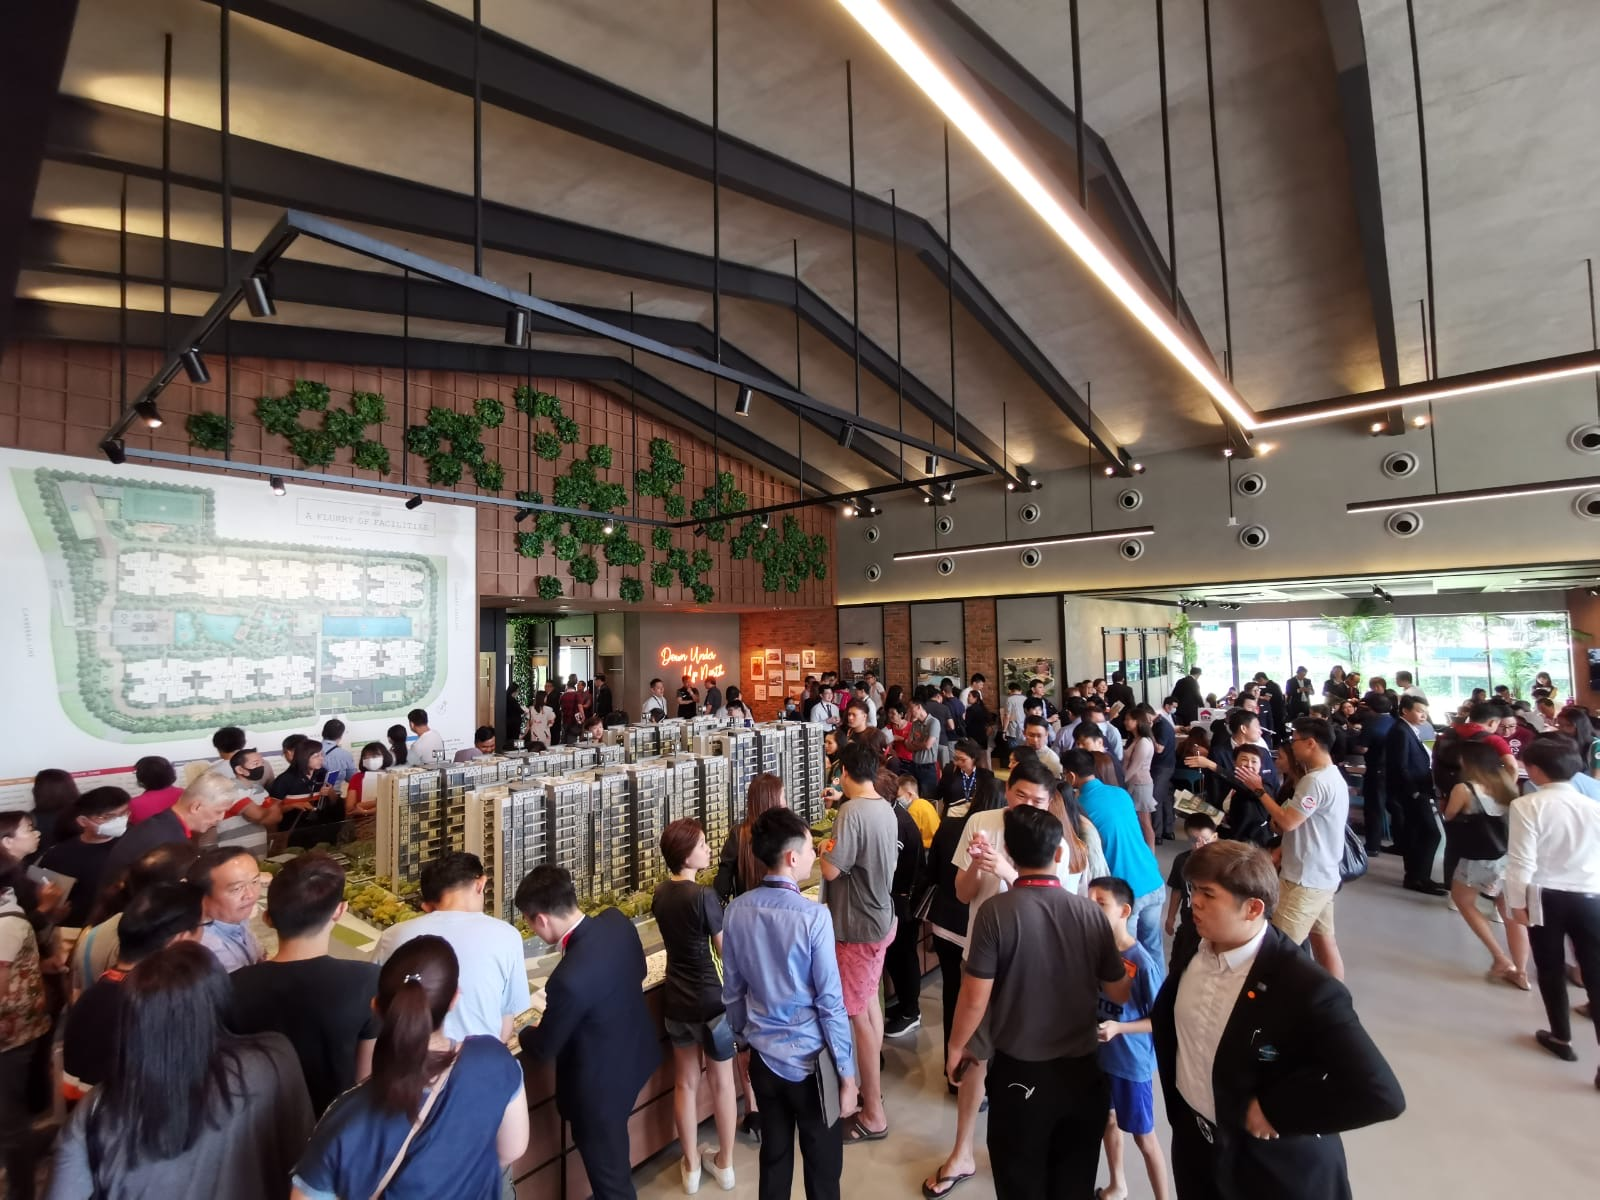 Crowd at Parc Canberra's sales gallery, which drew 2,200 visitors at the close of Feb 1 (Photo: Albert Chua/EdgeProp Singapore)